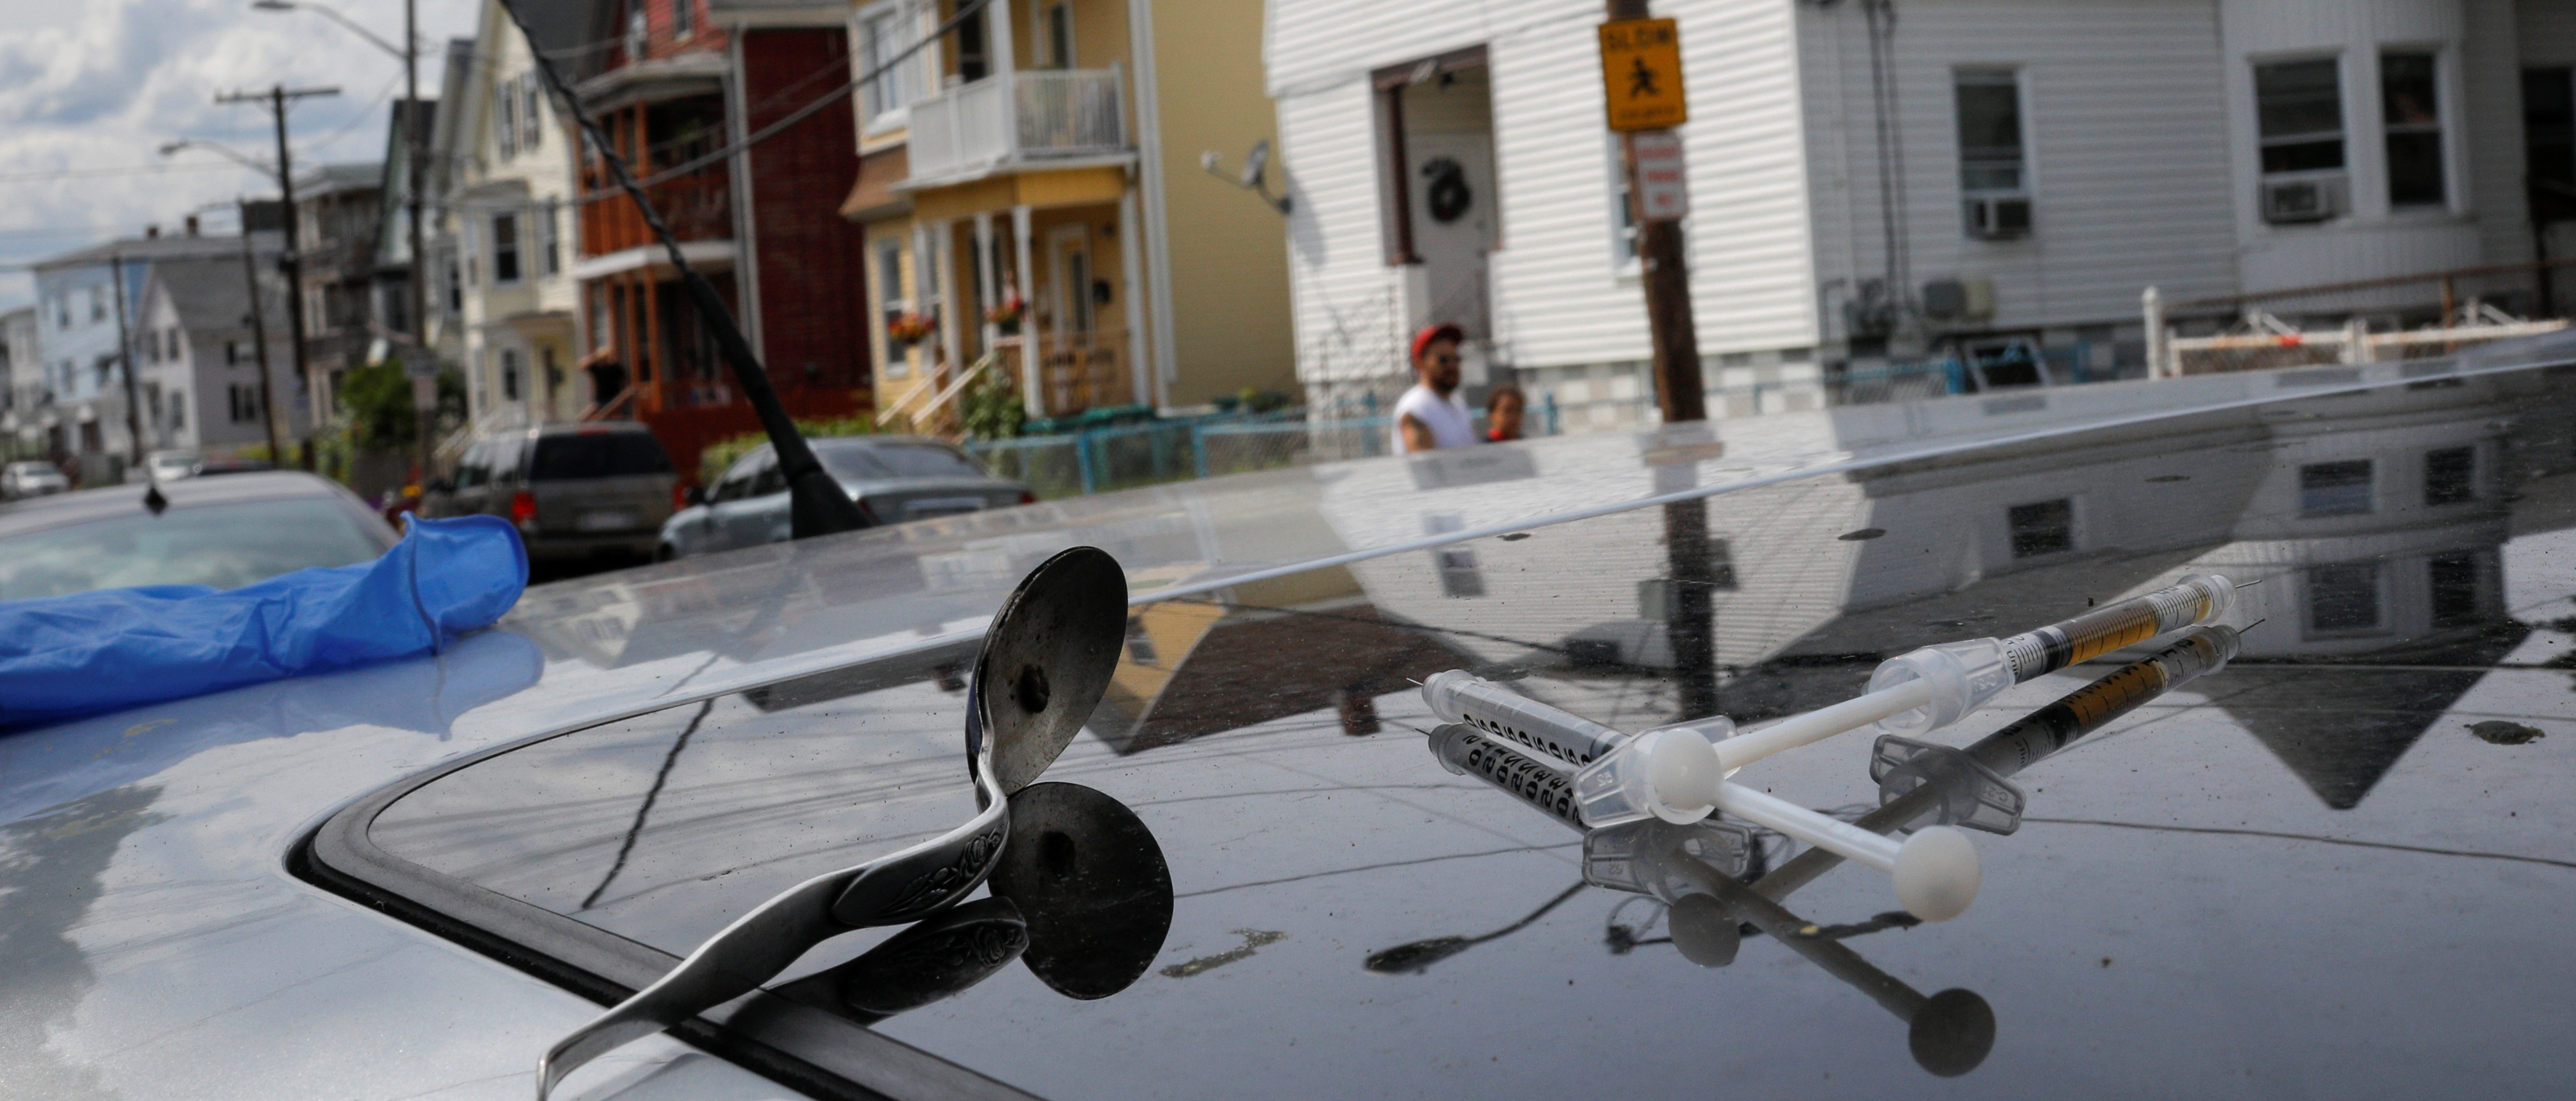 A full syringe, empty syringe and spoon sit on the roof of the car in which a man in his 20's overdosed on an opioid in the Boston suburb of Lynn. REUTERS/Brian Snyder